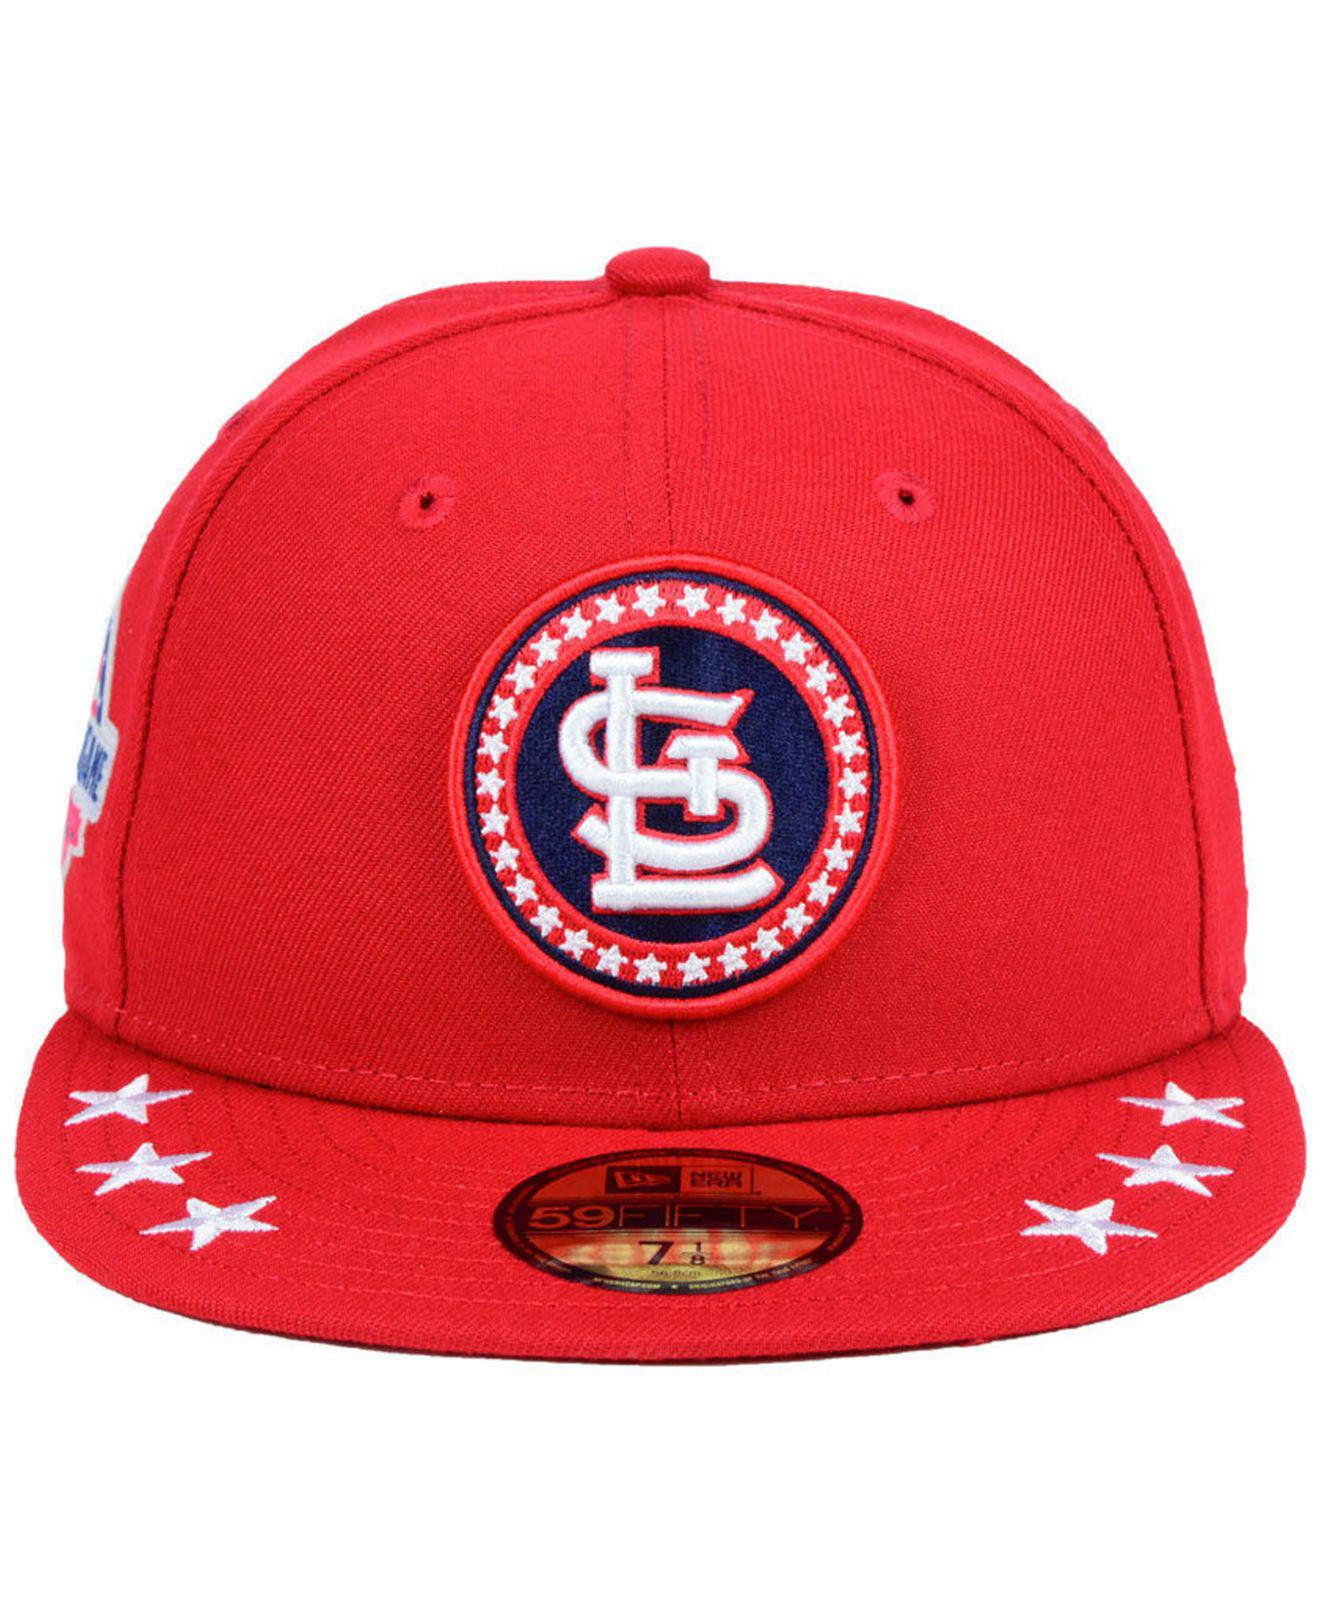 sale retailer a4a8a 23262 Lyst - KTZ St. Louis Cardinals All Star Workout 59fifty Fitted Cap in Red  for Men